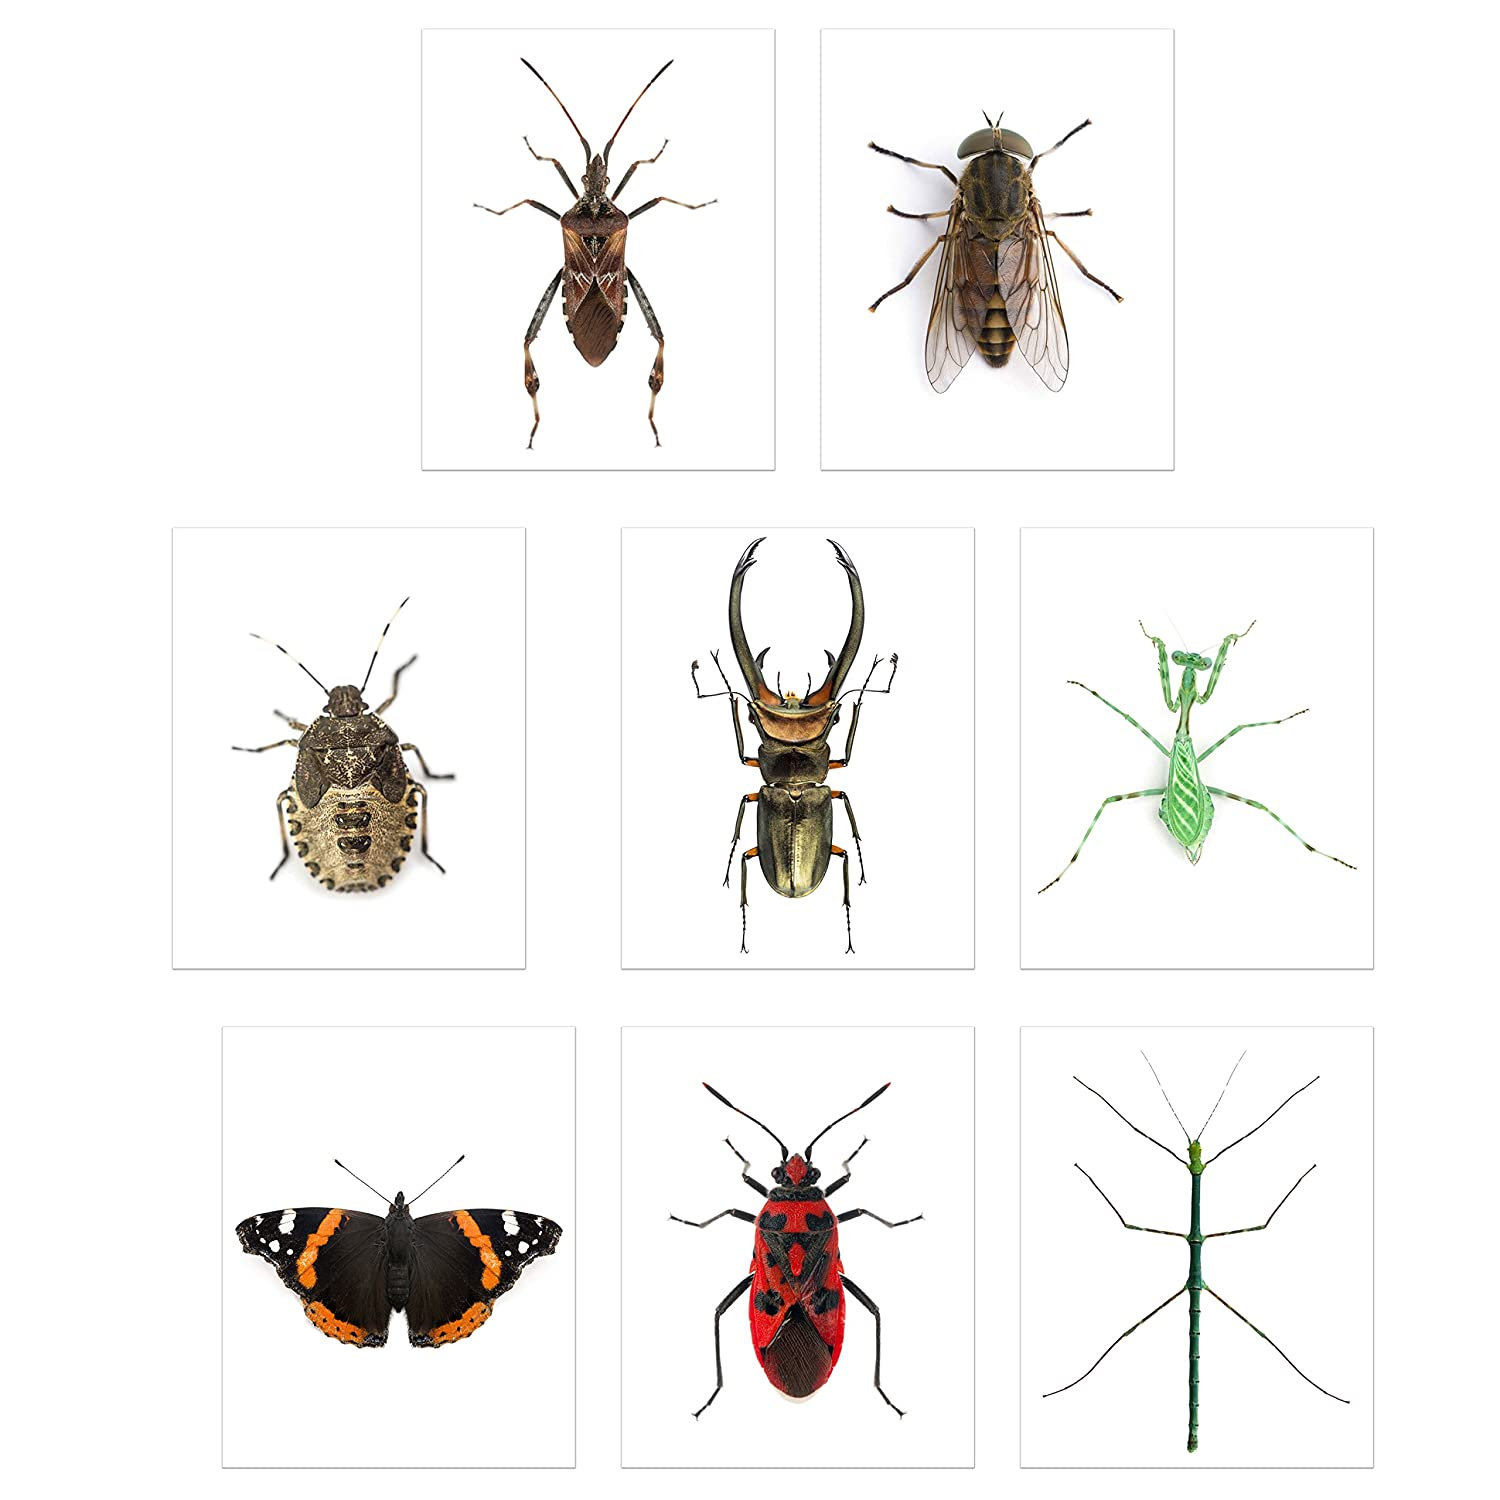 Faux Bug Collection Prints - Set of 8 (8x10) Cruelty-Free Photographs of Insects Wall Art Decor - Stick Bug - Cyclommatus Elaphus (Beetle) - Giant Horse Fly - Red Admiral Butterfly - Pinstripe Mantis